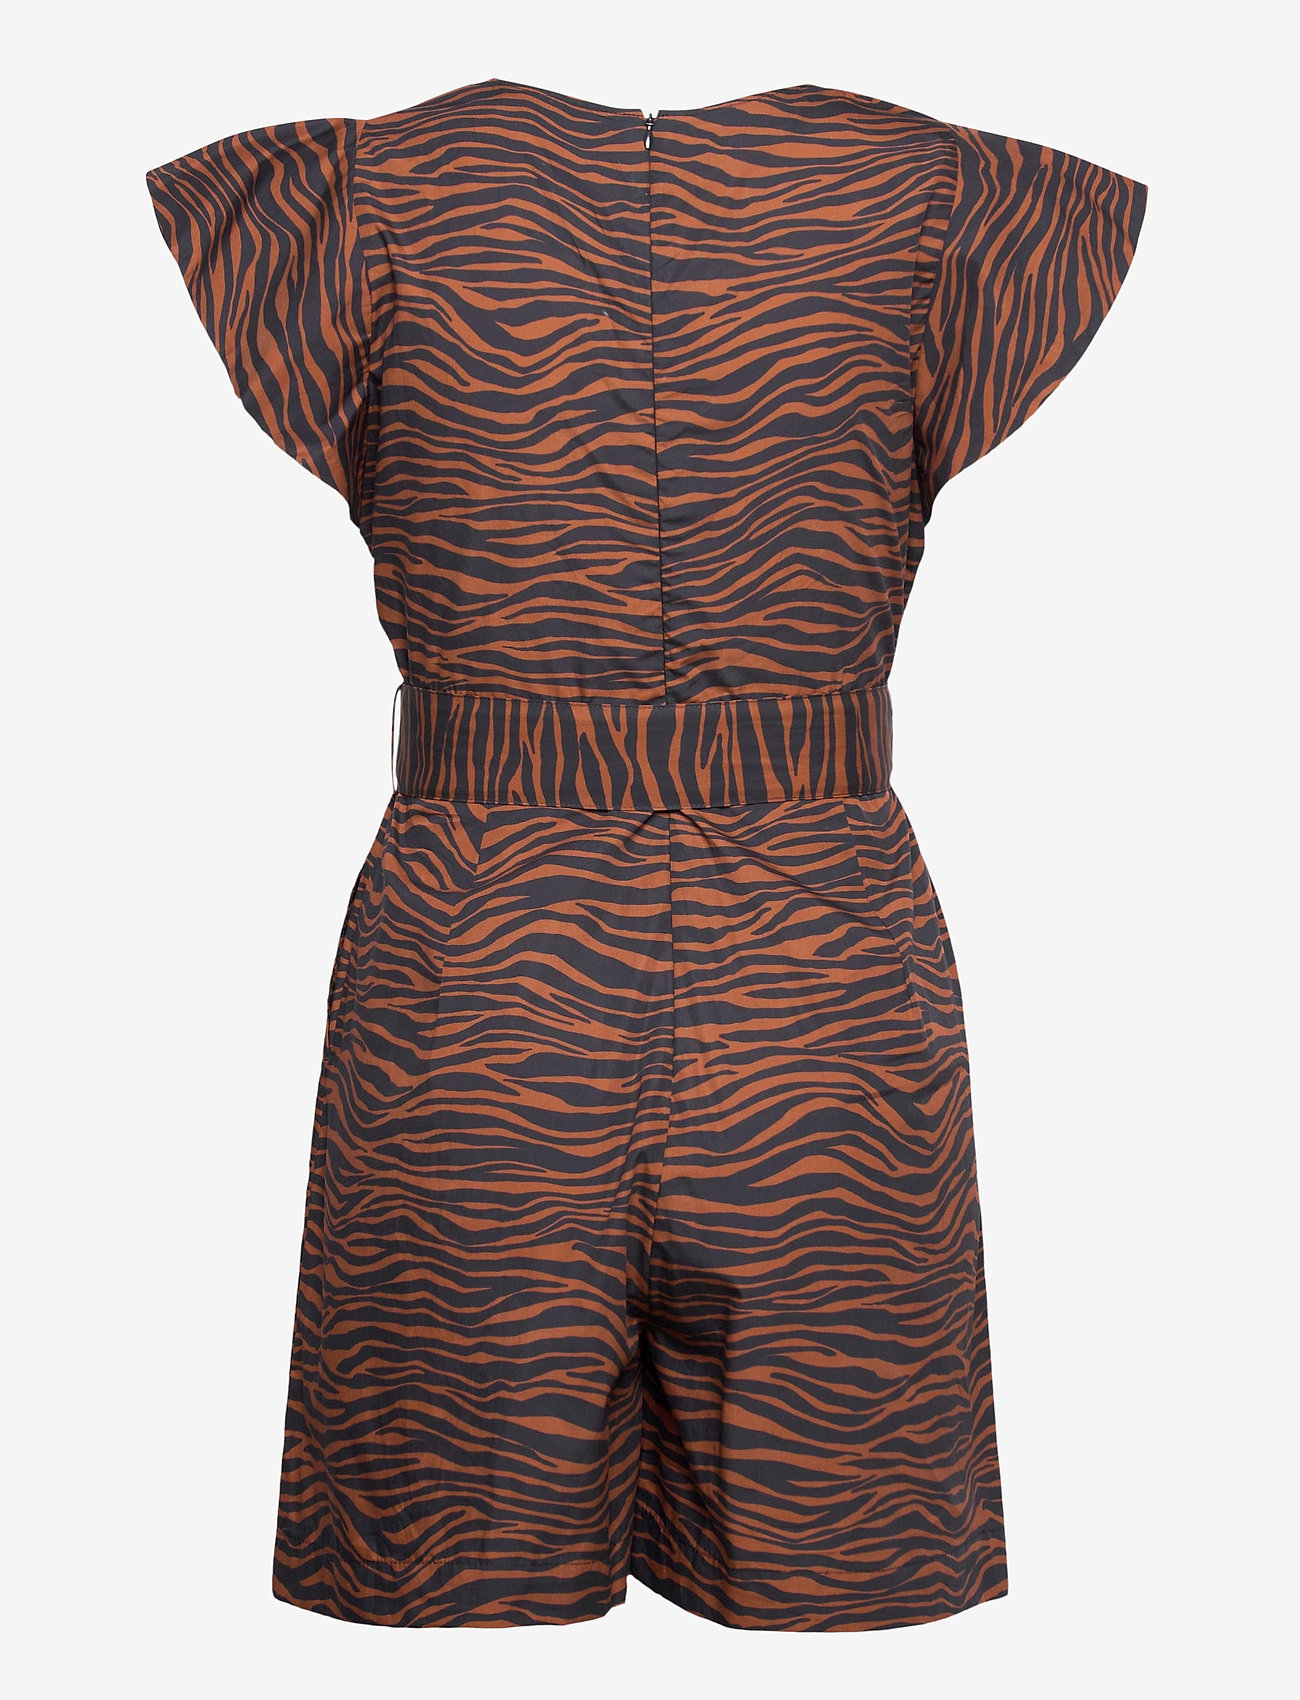 Max&Co. - FATTORE - jumpsuits - brown pattern - 1